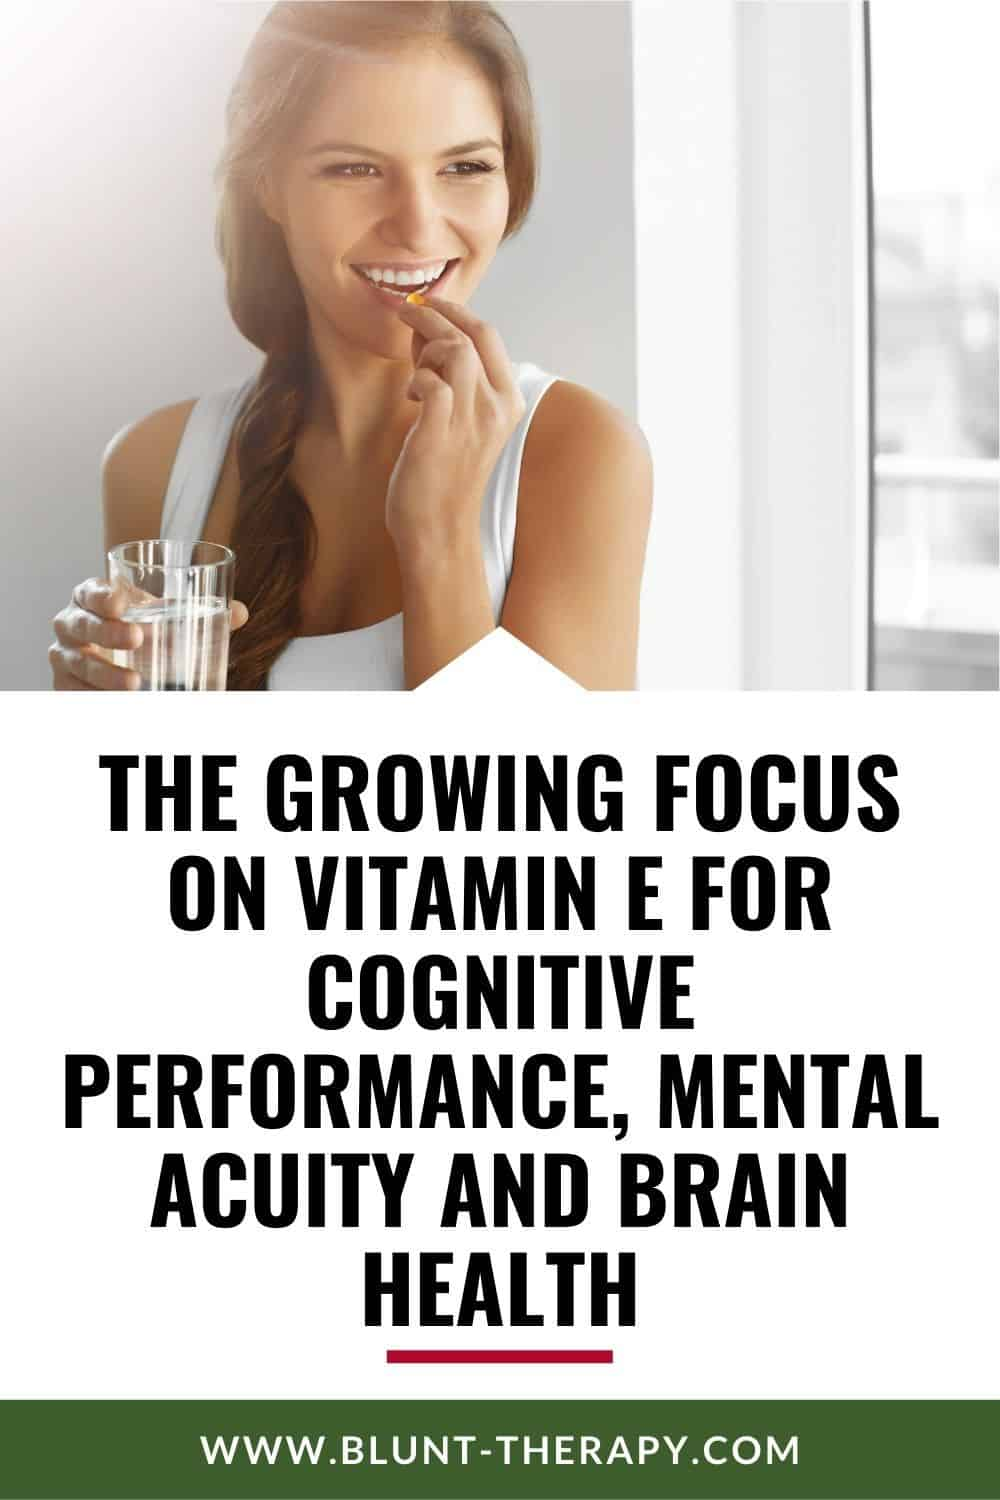 The Growing Focus on Vitamin E for Cognitive Performance, Mental Acuity and Brain Health